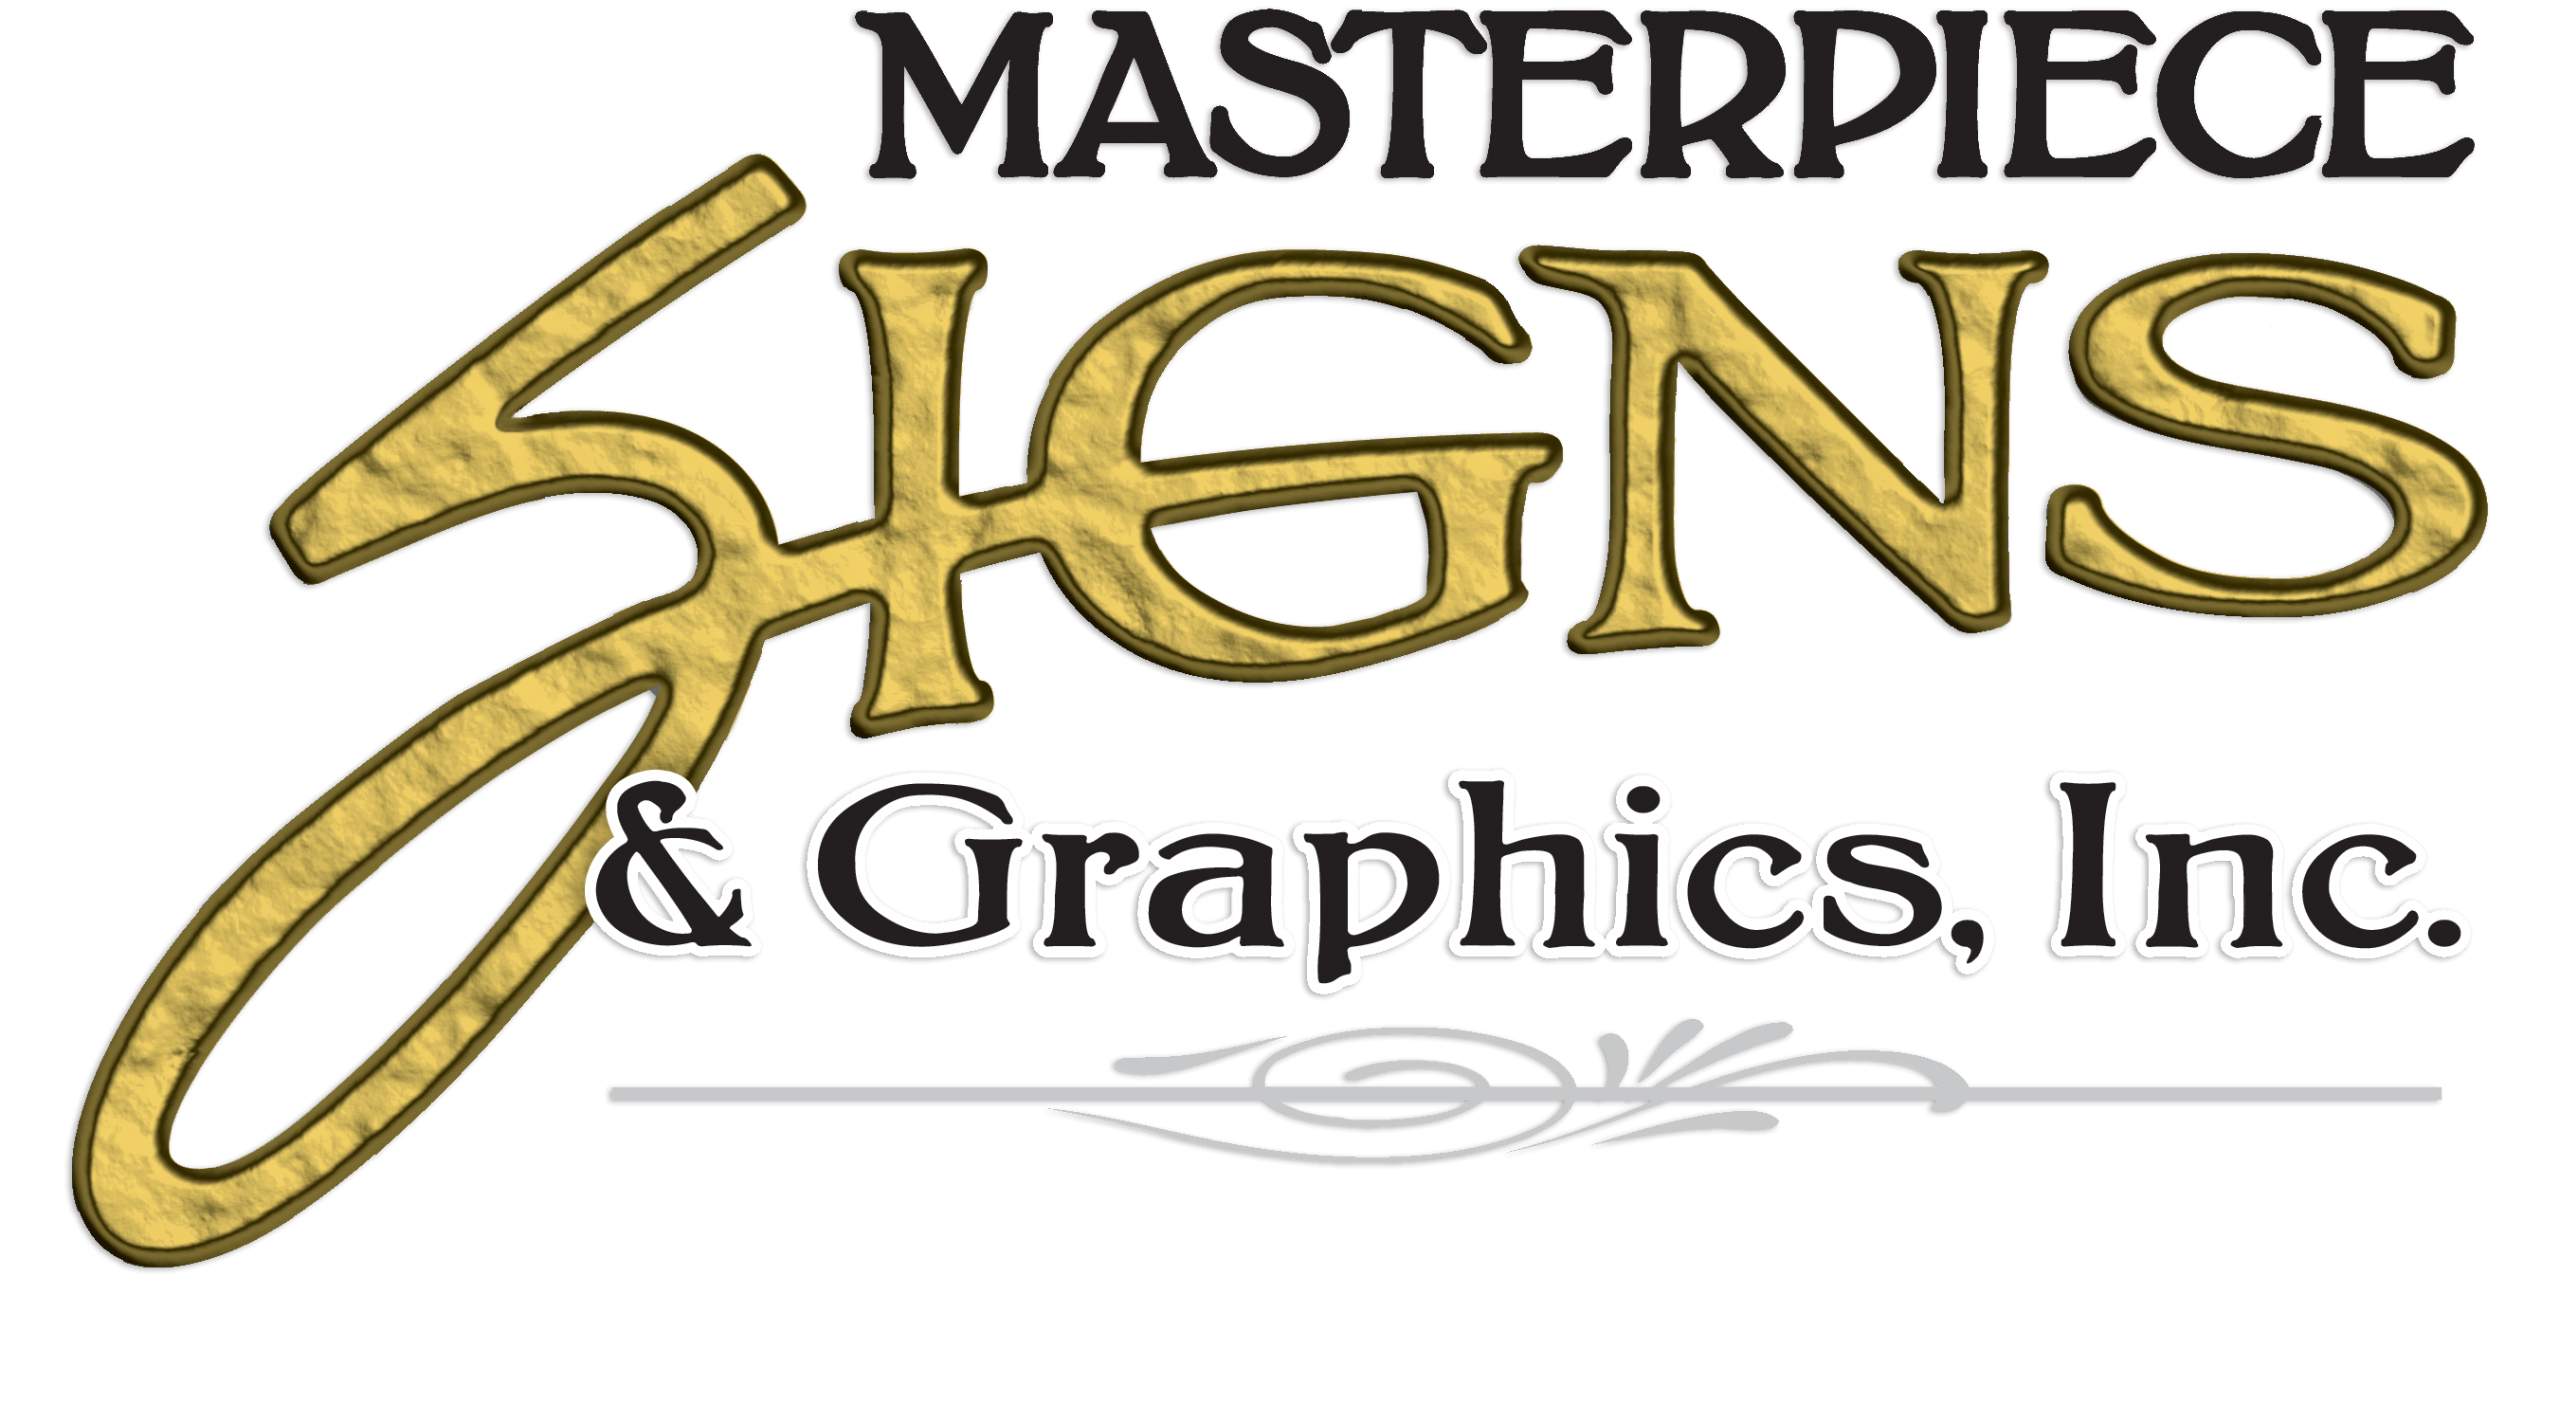 Masterpiece Signs & Graphics, Inc.